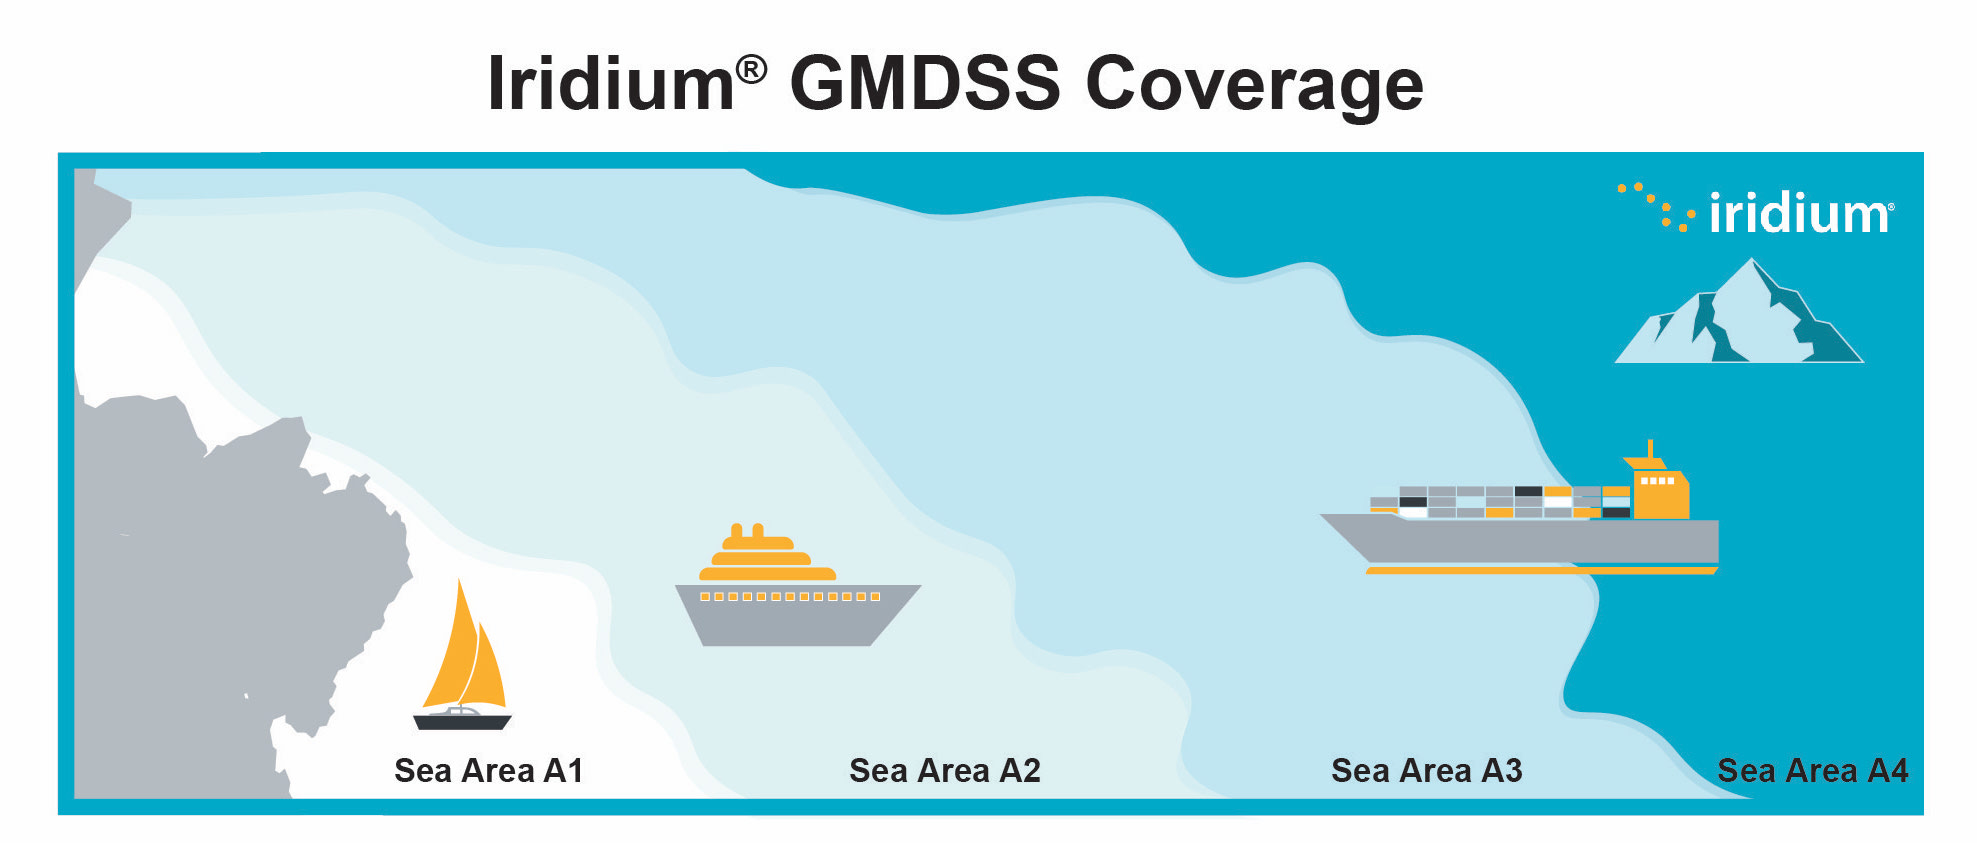 Iridium GMDSS will provide truly global safety services to mariners, even in the polar regions.